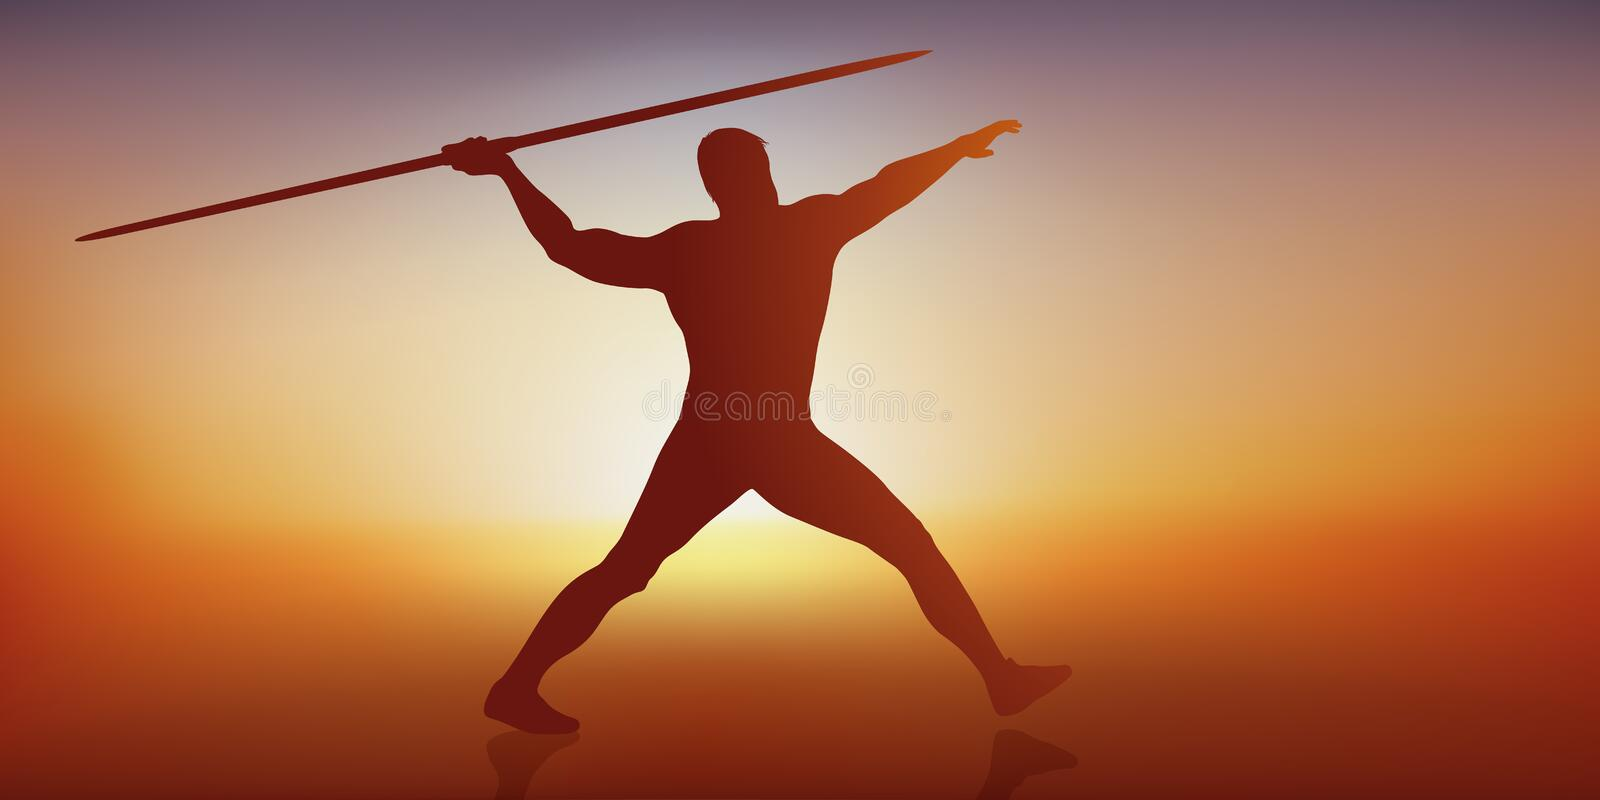 The concept of athlete performance with a javelin thrower. Concept of the athlete's performance with the gesture of an athlete throwing his javelin to beat a vector illustration